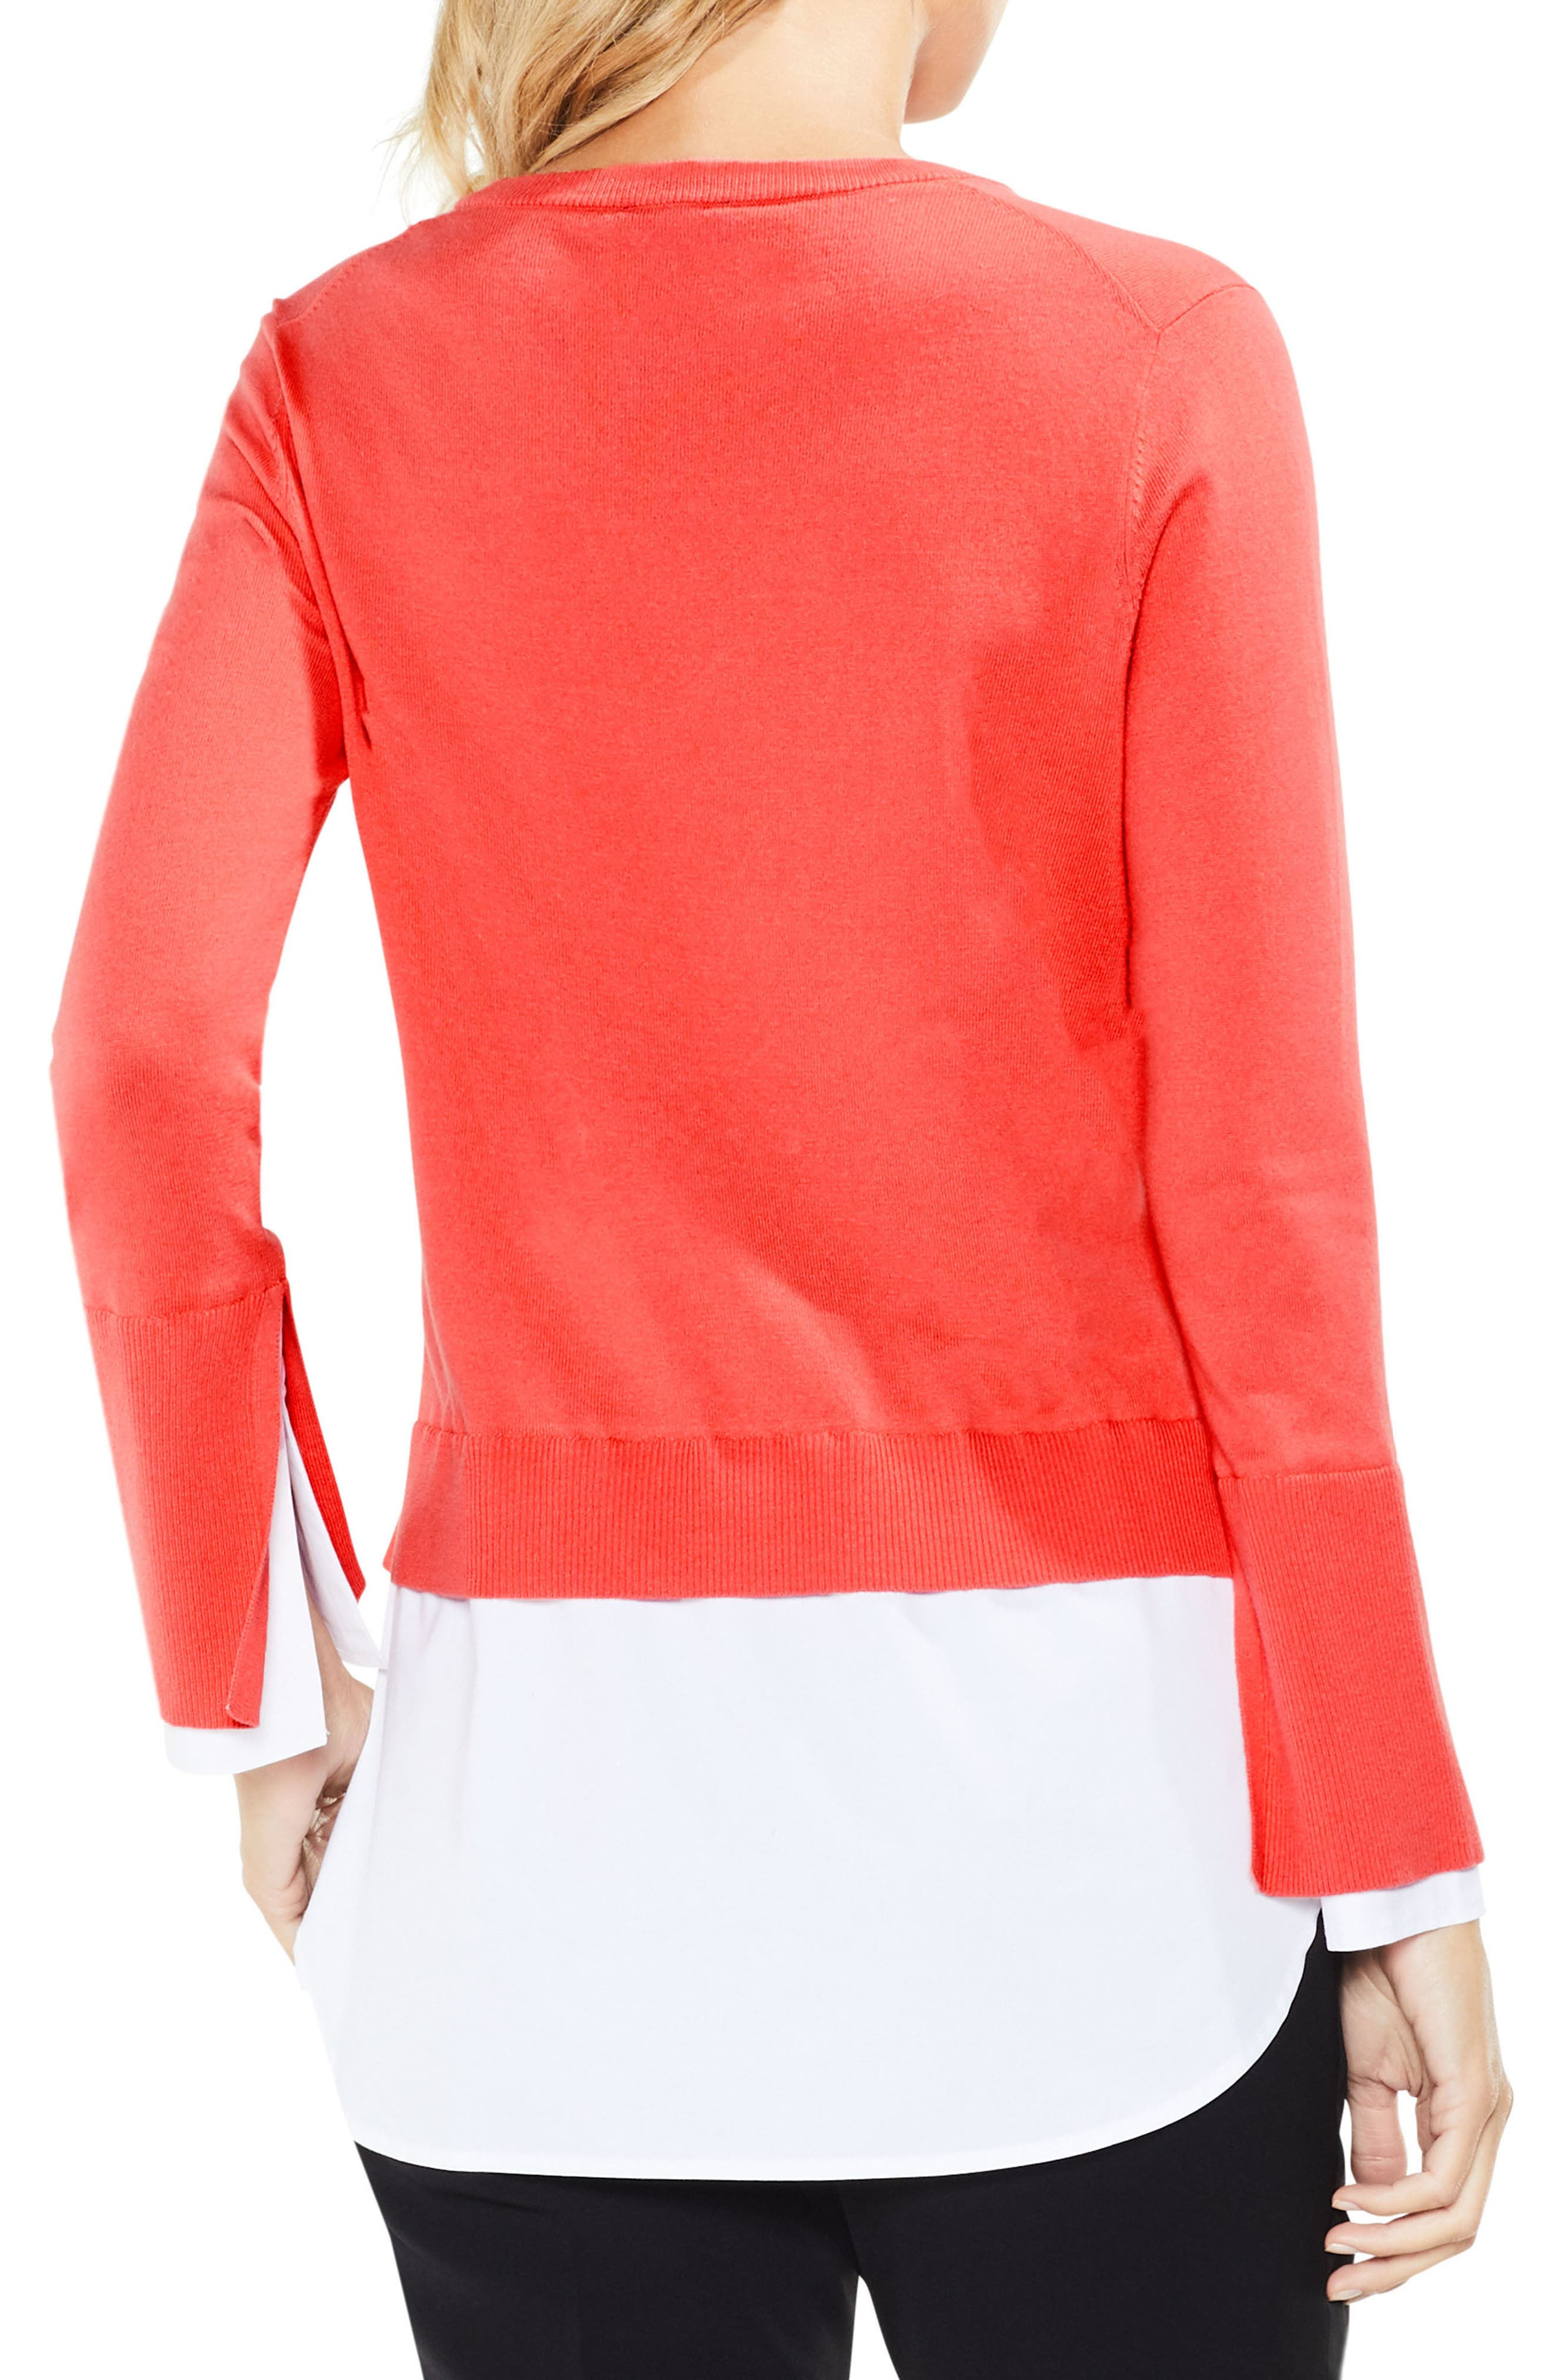 Alternate Image 2  - Vince Camuto Layered Look Sweater